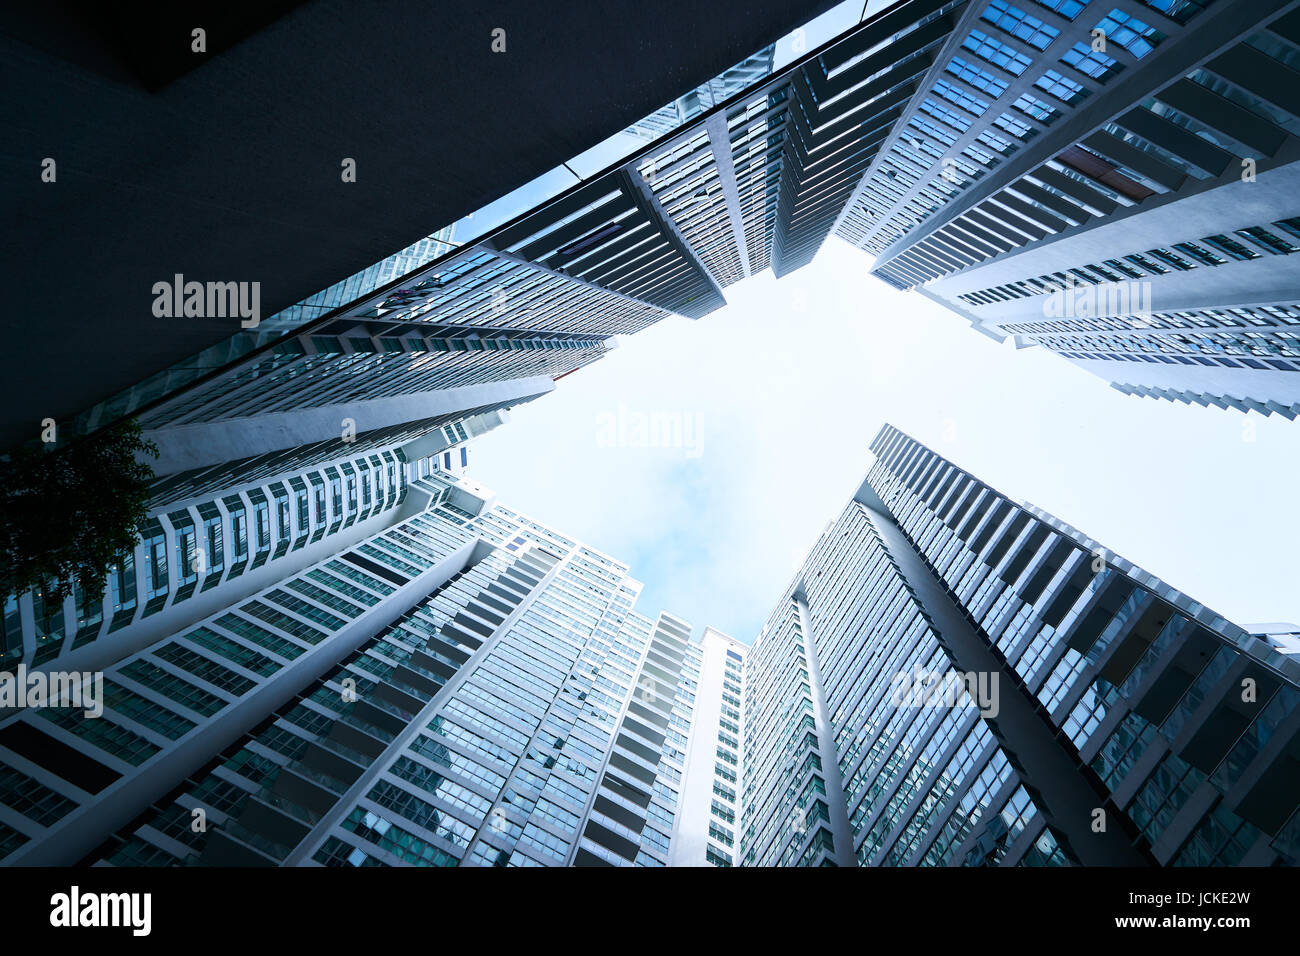 Abstract low angle view of common modern business skyscrapers.Multistoried modern and stylish living block of flats. - Stock Image